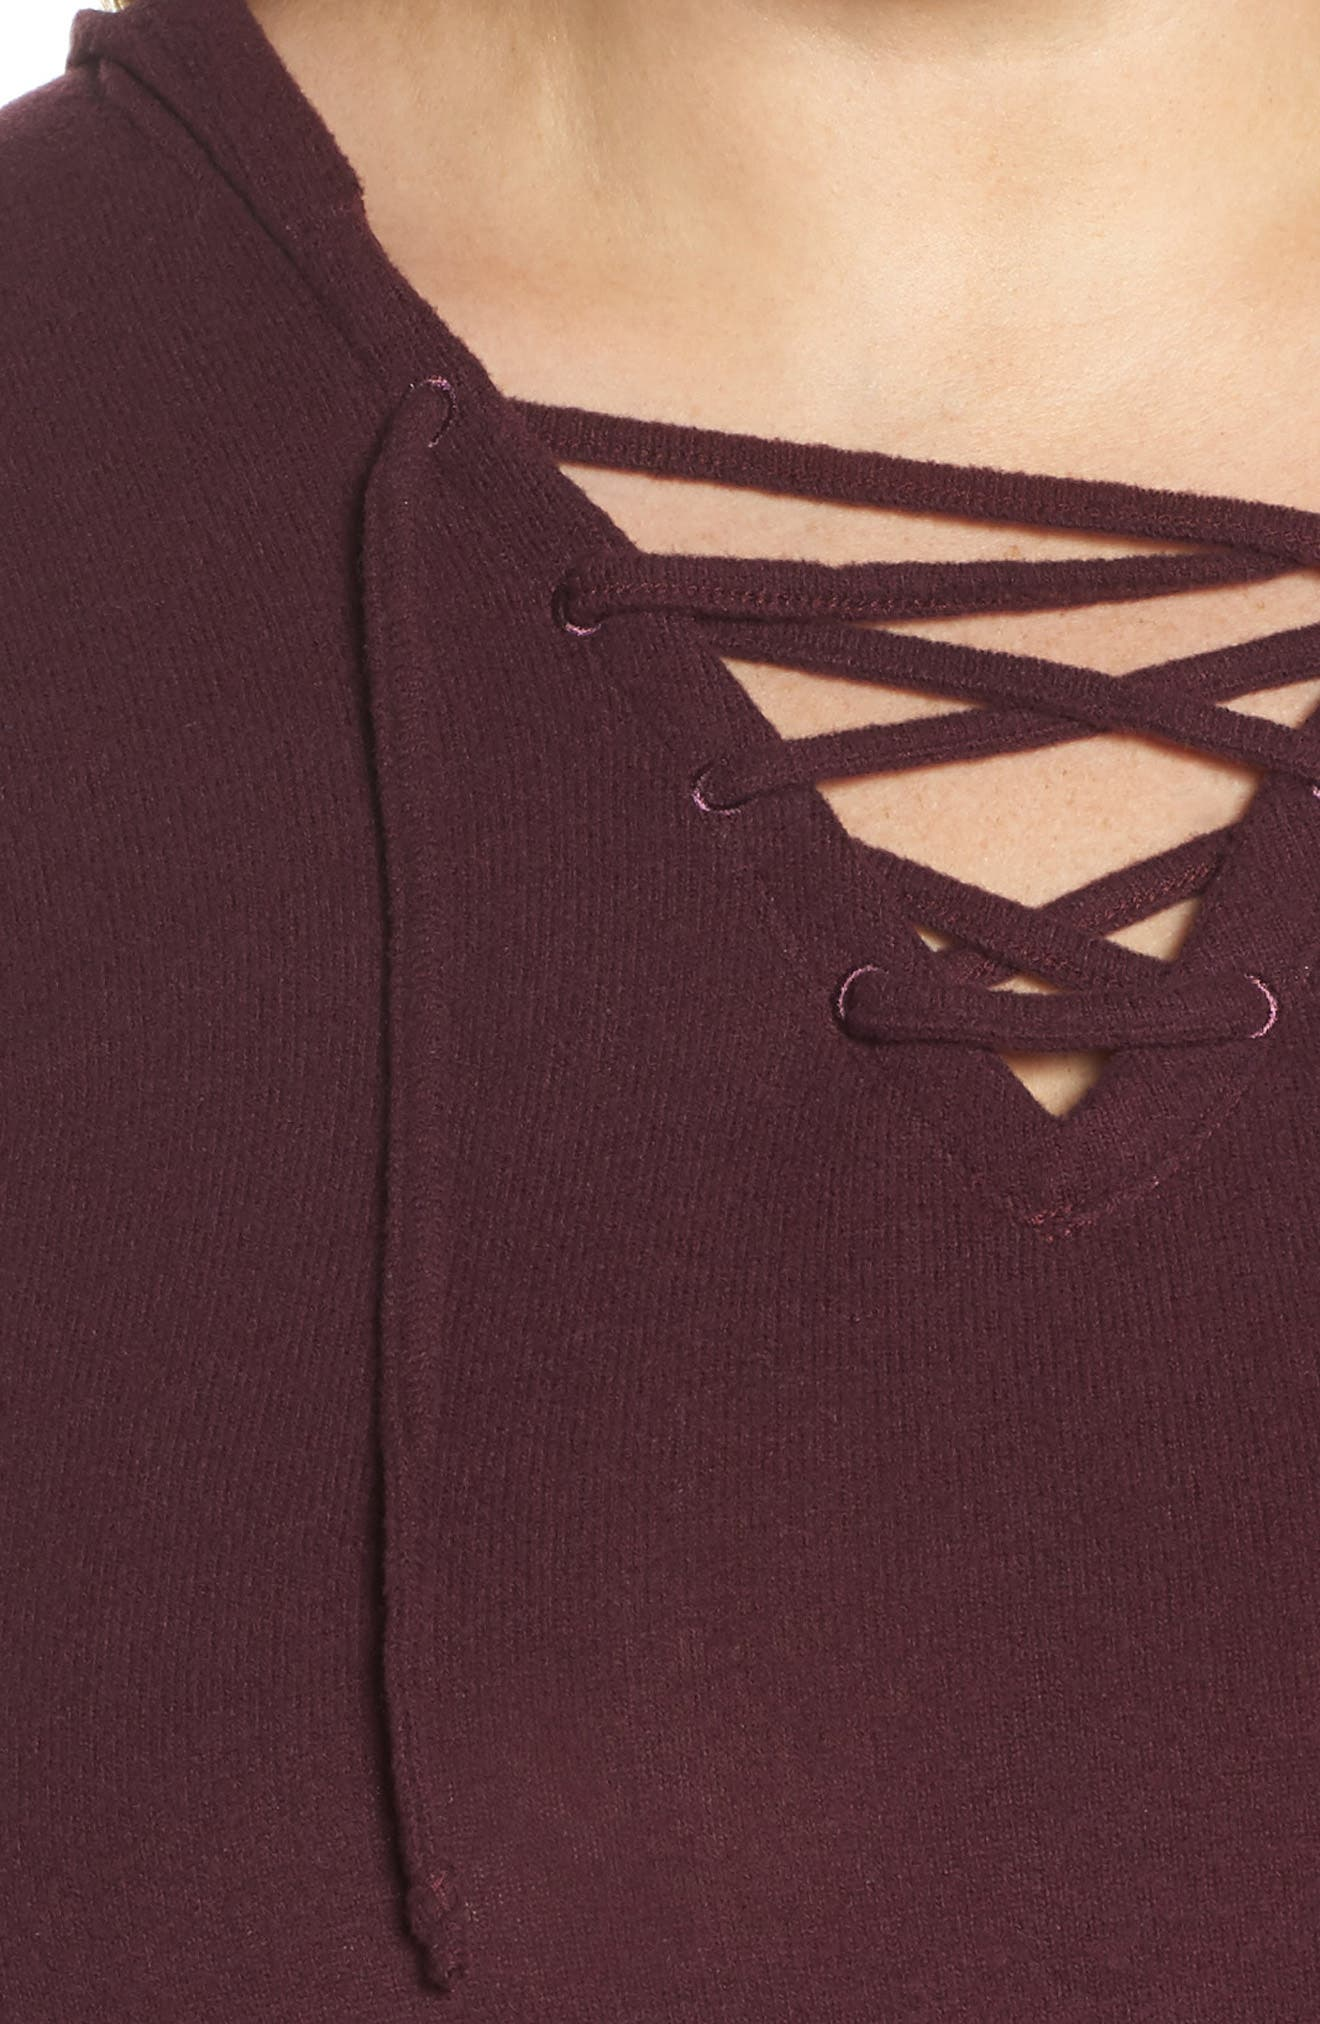 Lace-Up Pullover,                             Alternate thumbnail 4, color,                             Burgundy Stem Marl